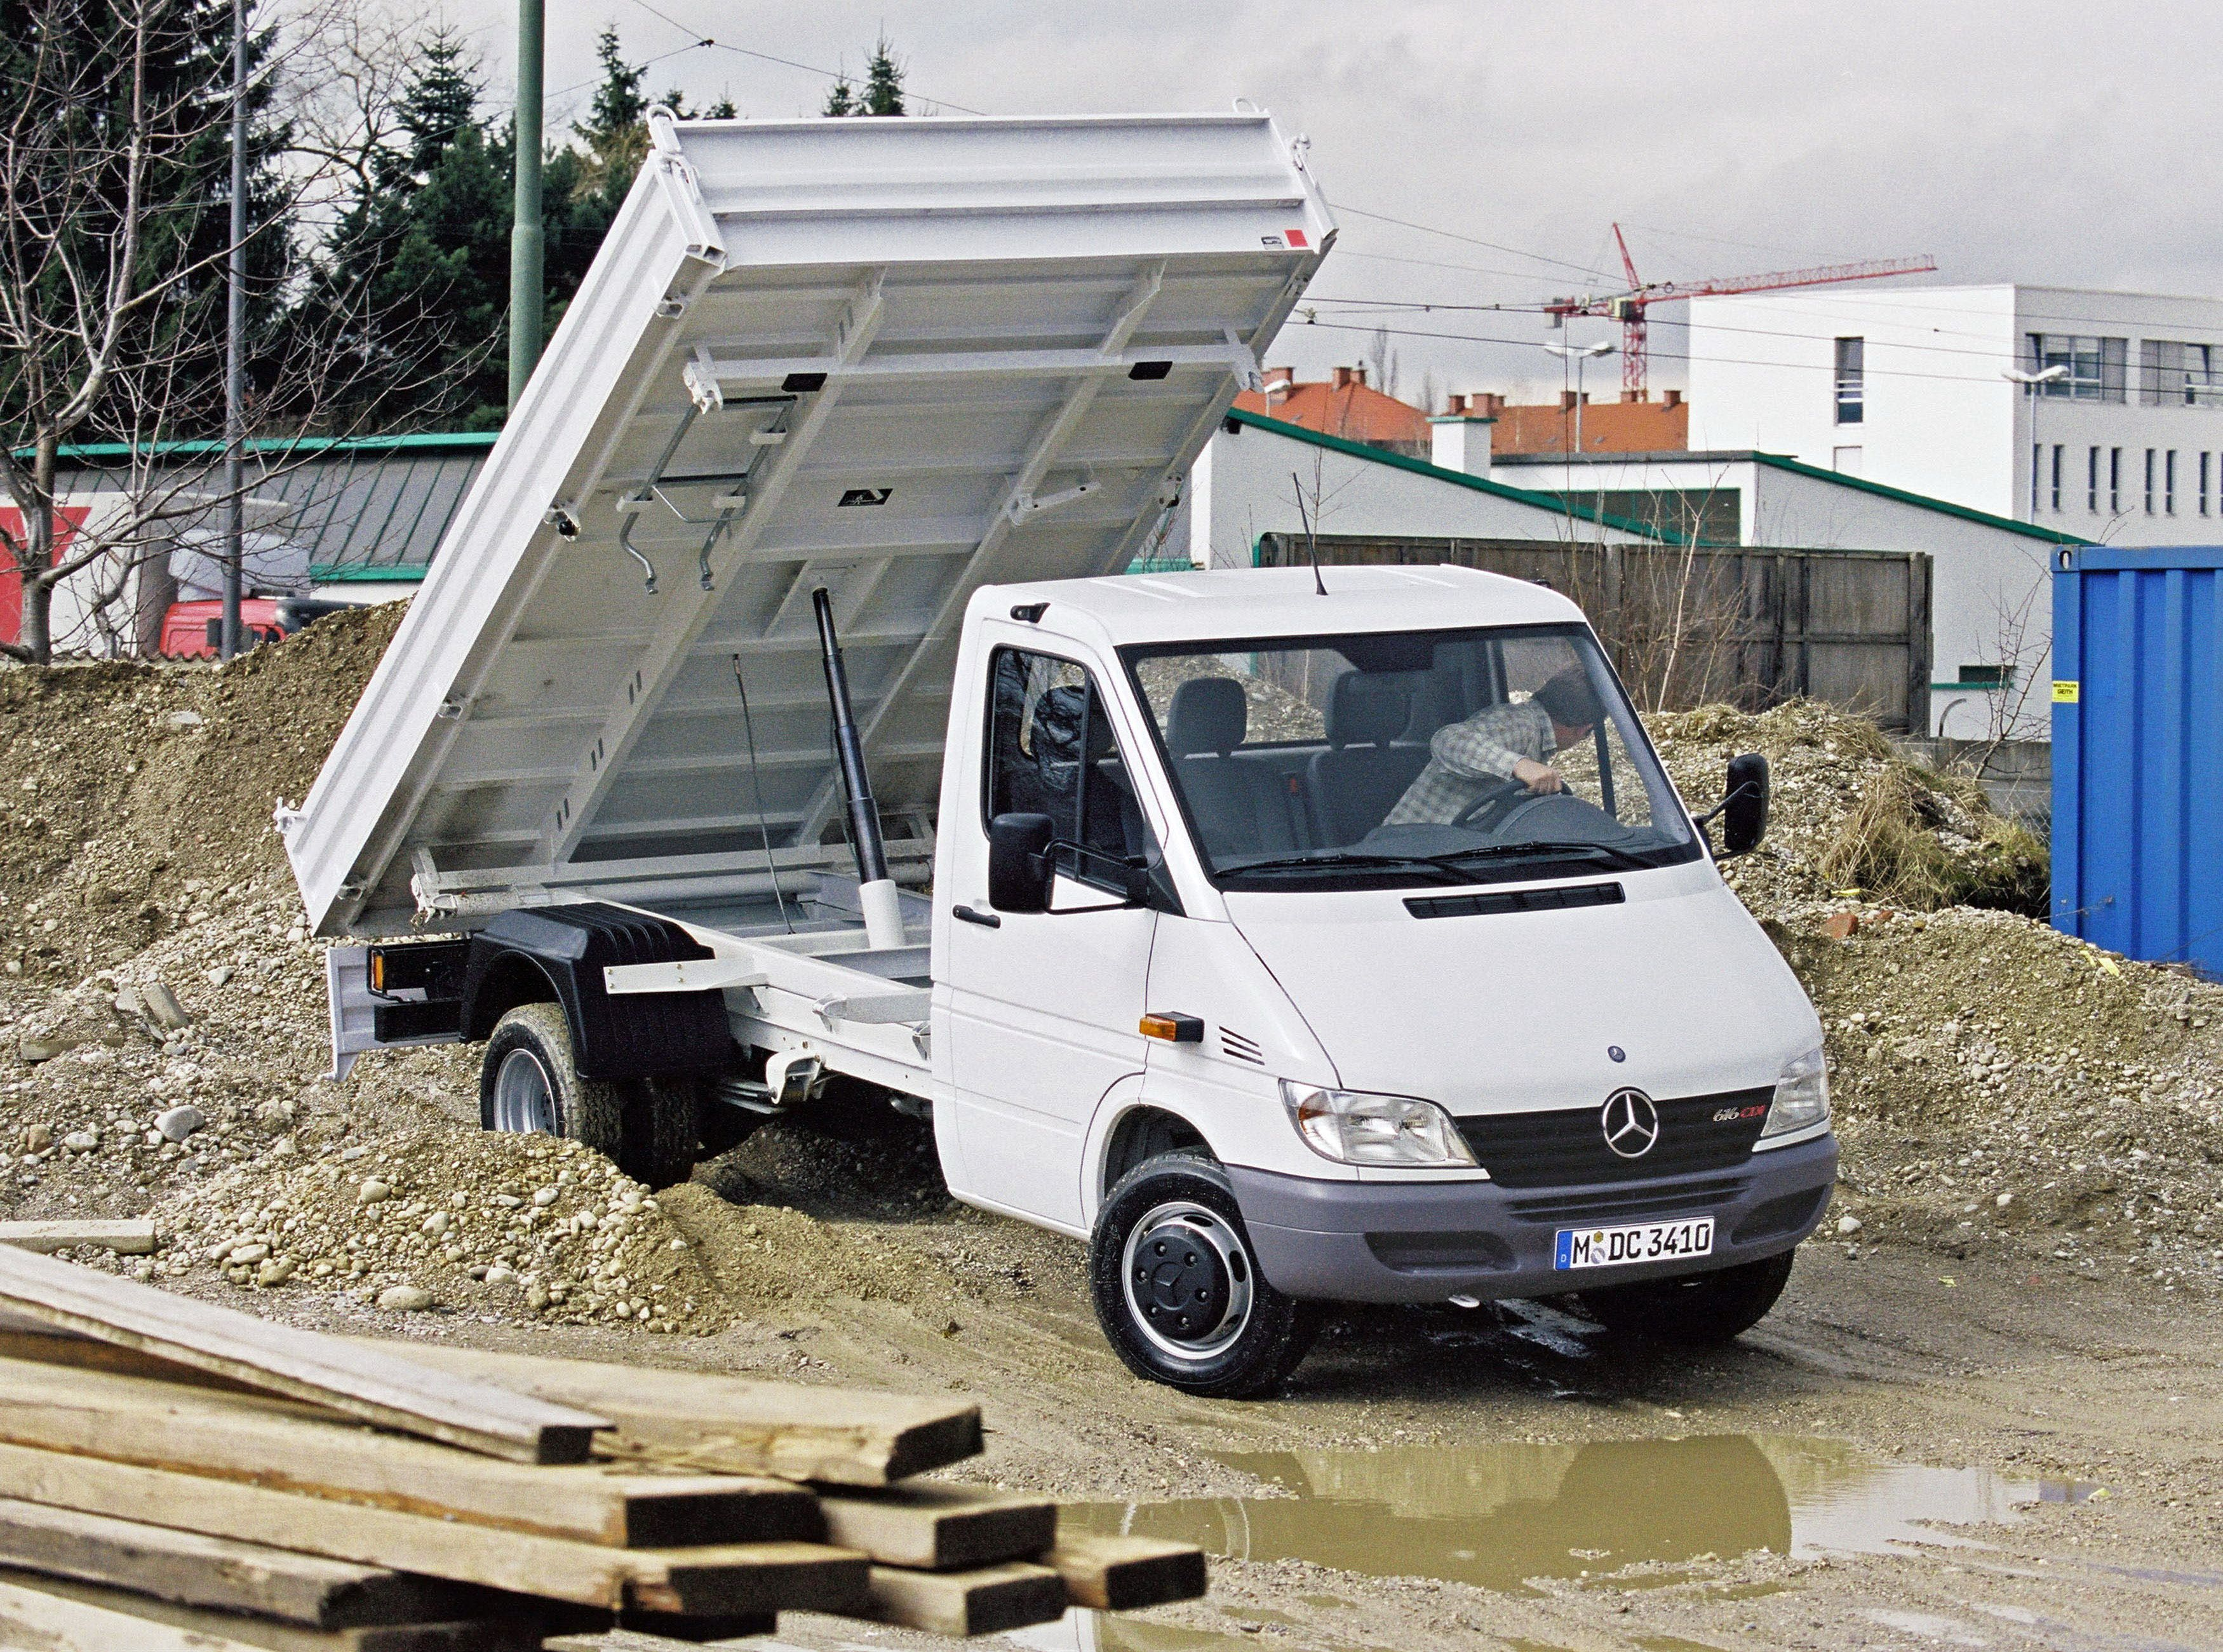 generation new benz mercedes third presents minibus transporter vehicles of sprinter en the